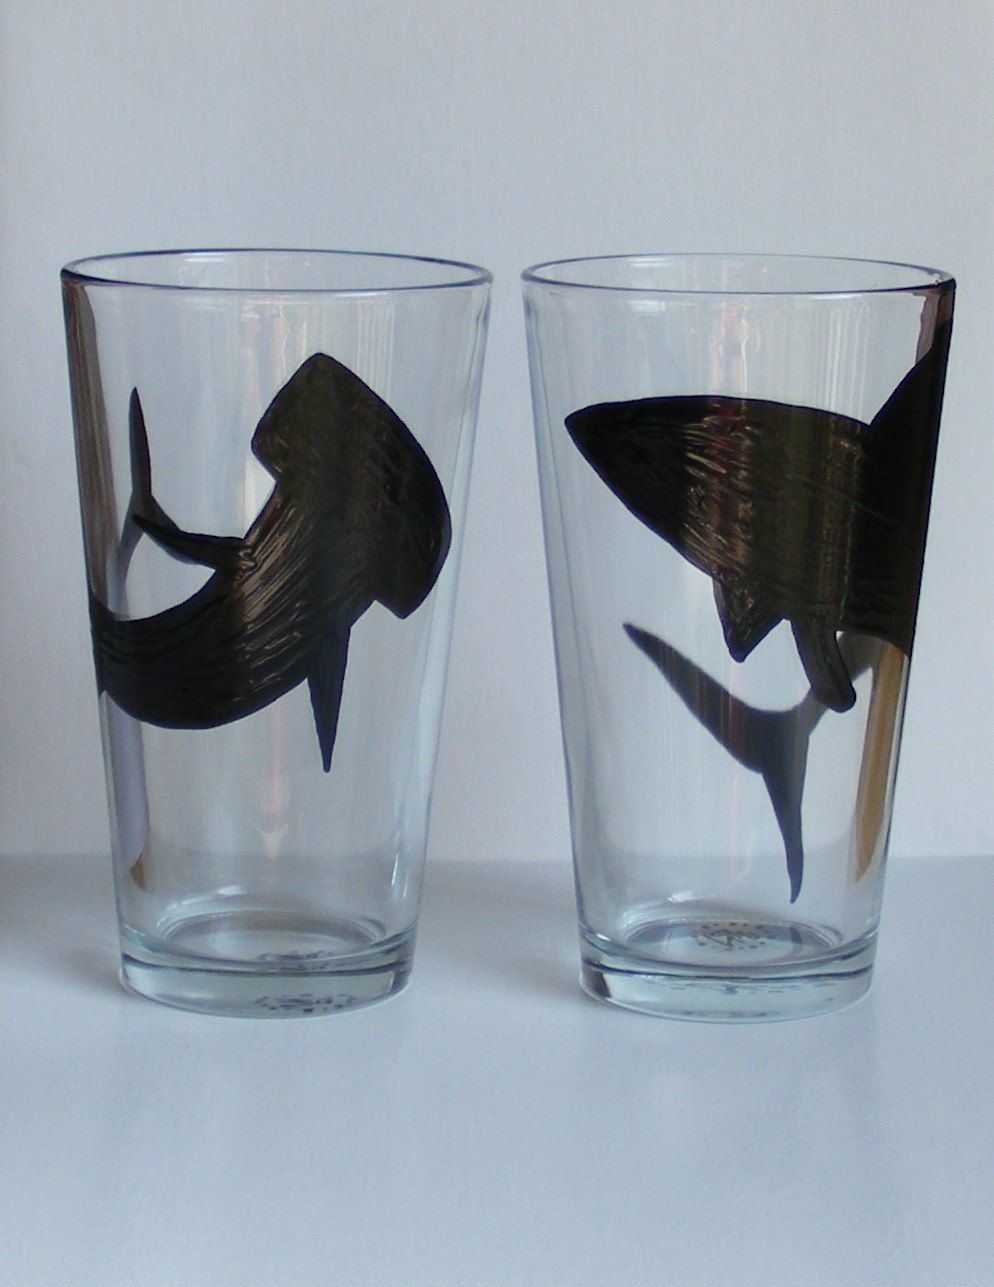 Set of 2 Shark glasses, Pilsners have a Hammerhead on one and a Great White on the other.